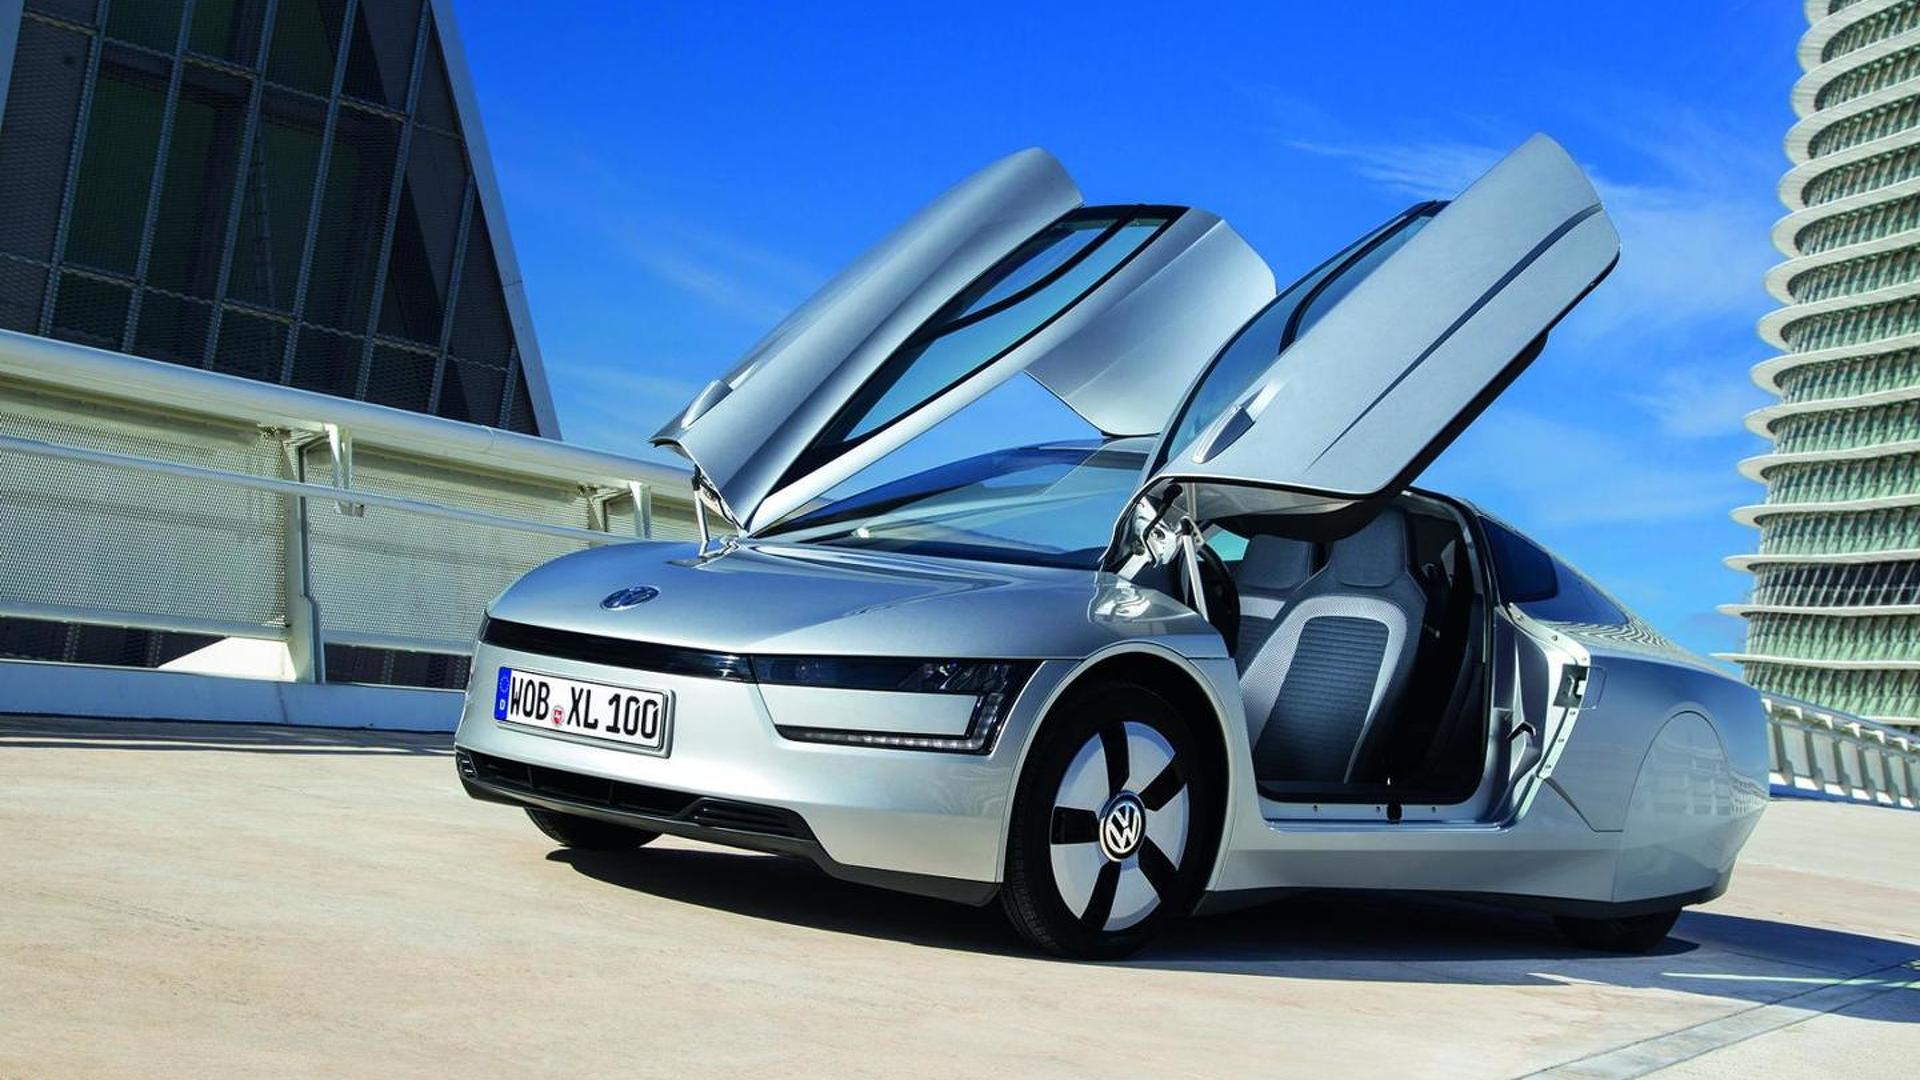 Volkswagen confirms XL1 technical details